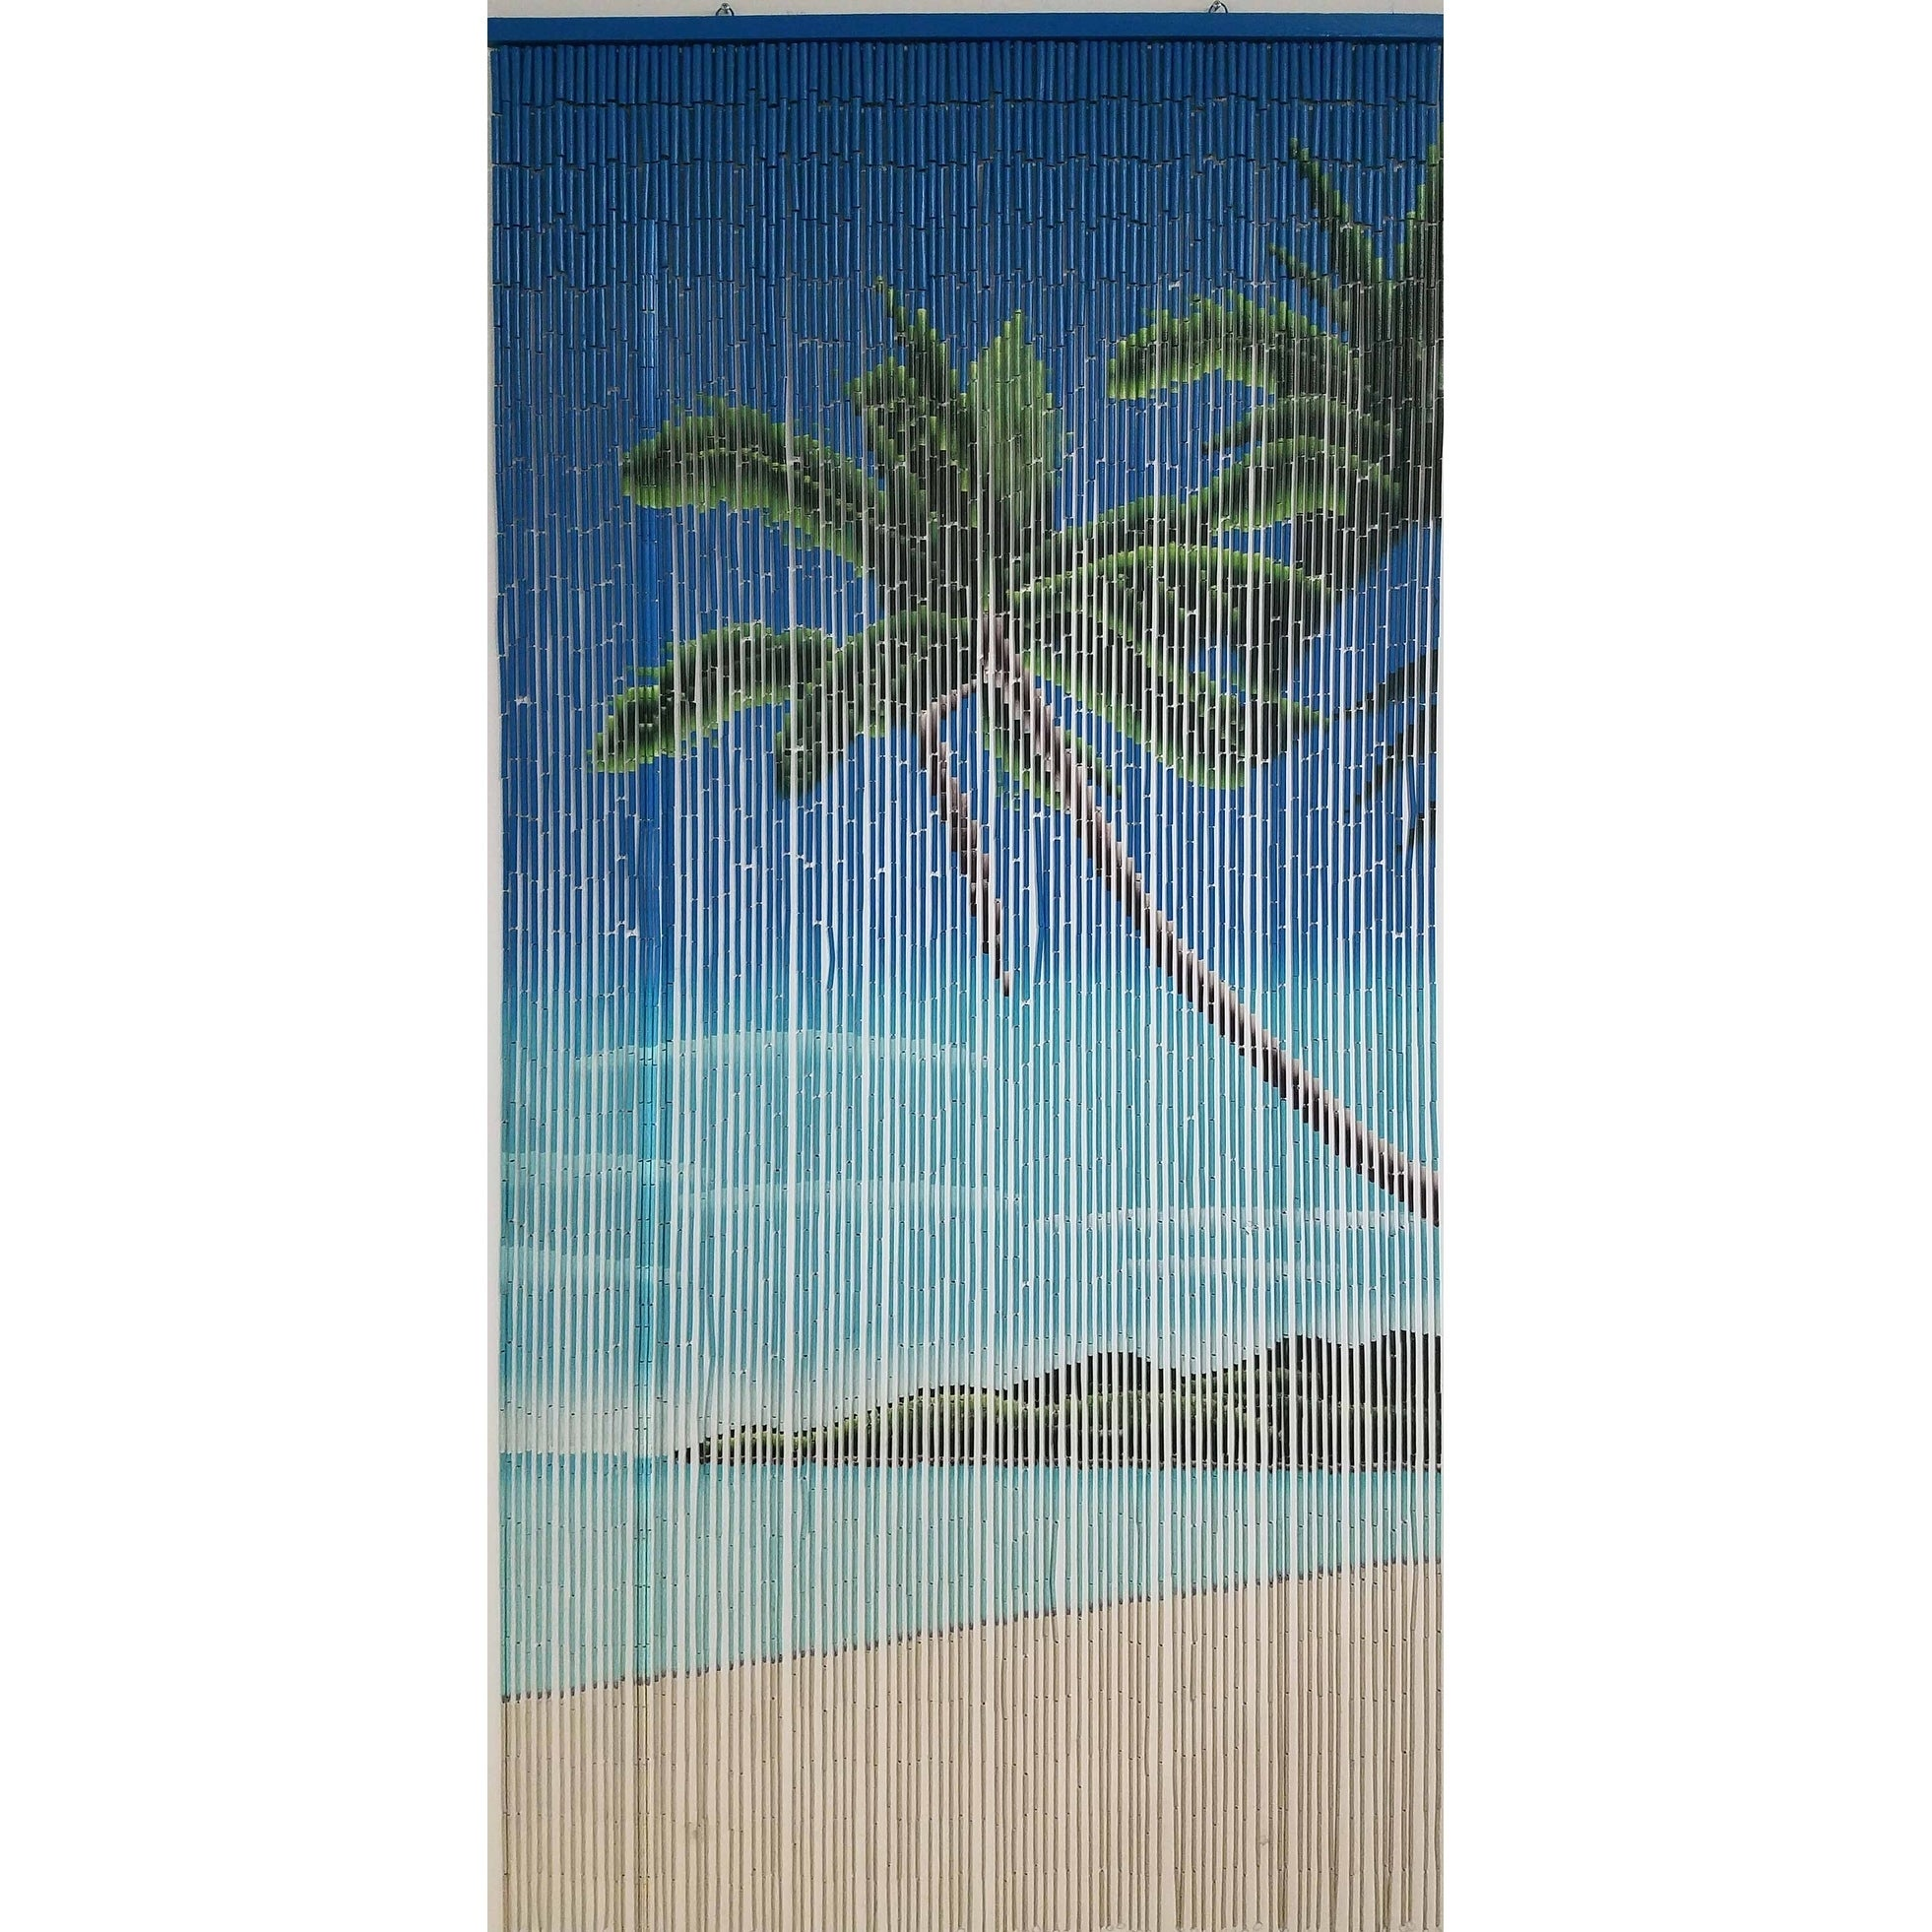 Shop Black Friday Deals On Evideco Bamboo Beaded Curtain Doorway 90 Strings 78 8 H X 35 5 W 78 8h X 35 5 Inch 200x90 Cm 78 8h X 35 5 Inch 200x90 Cm Overstock 23002625